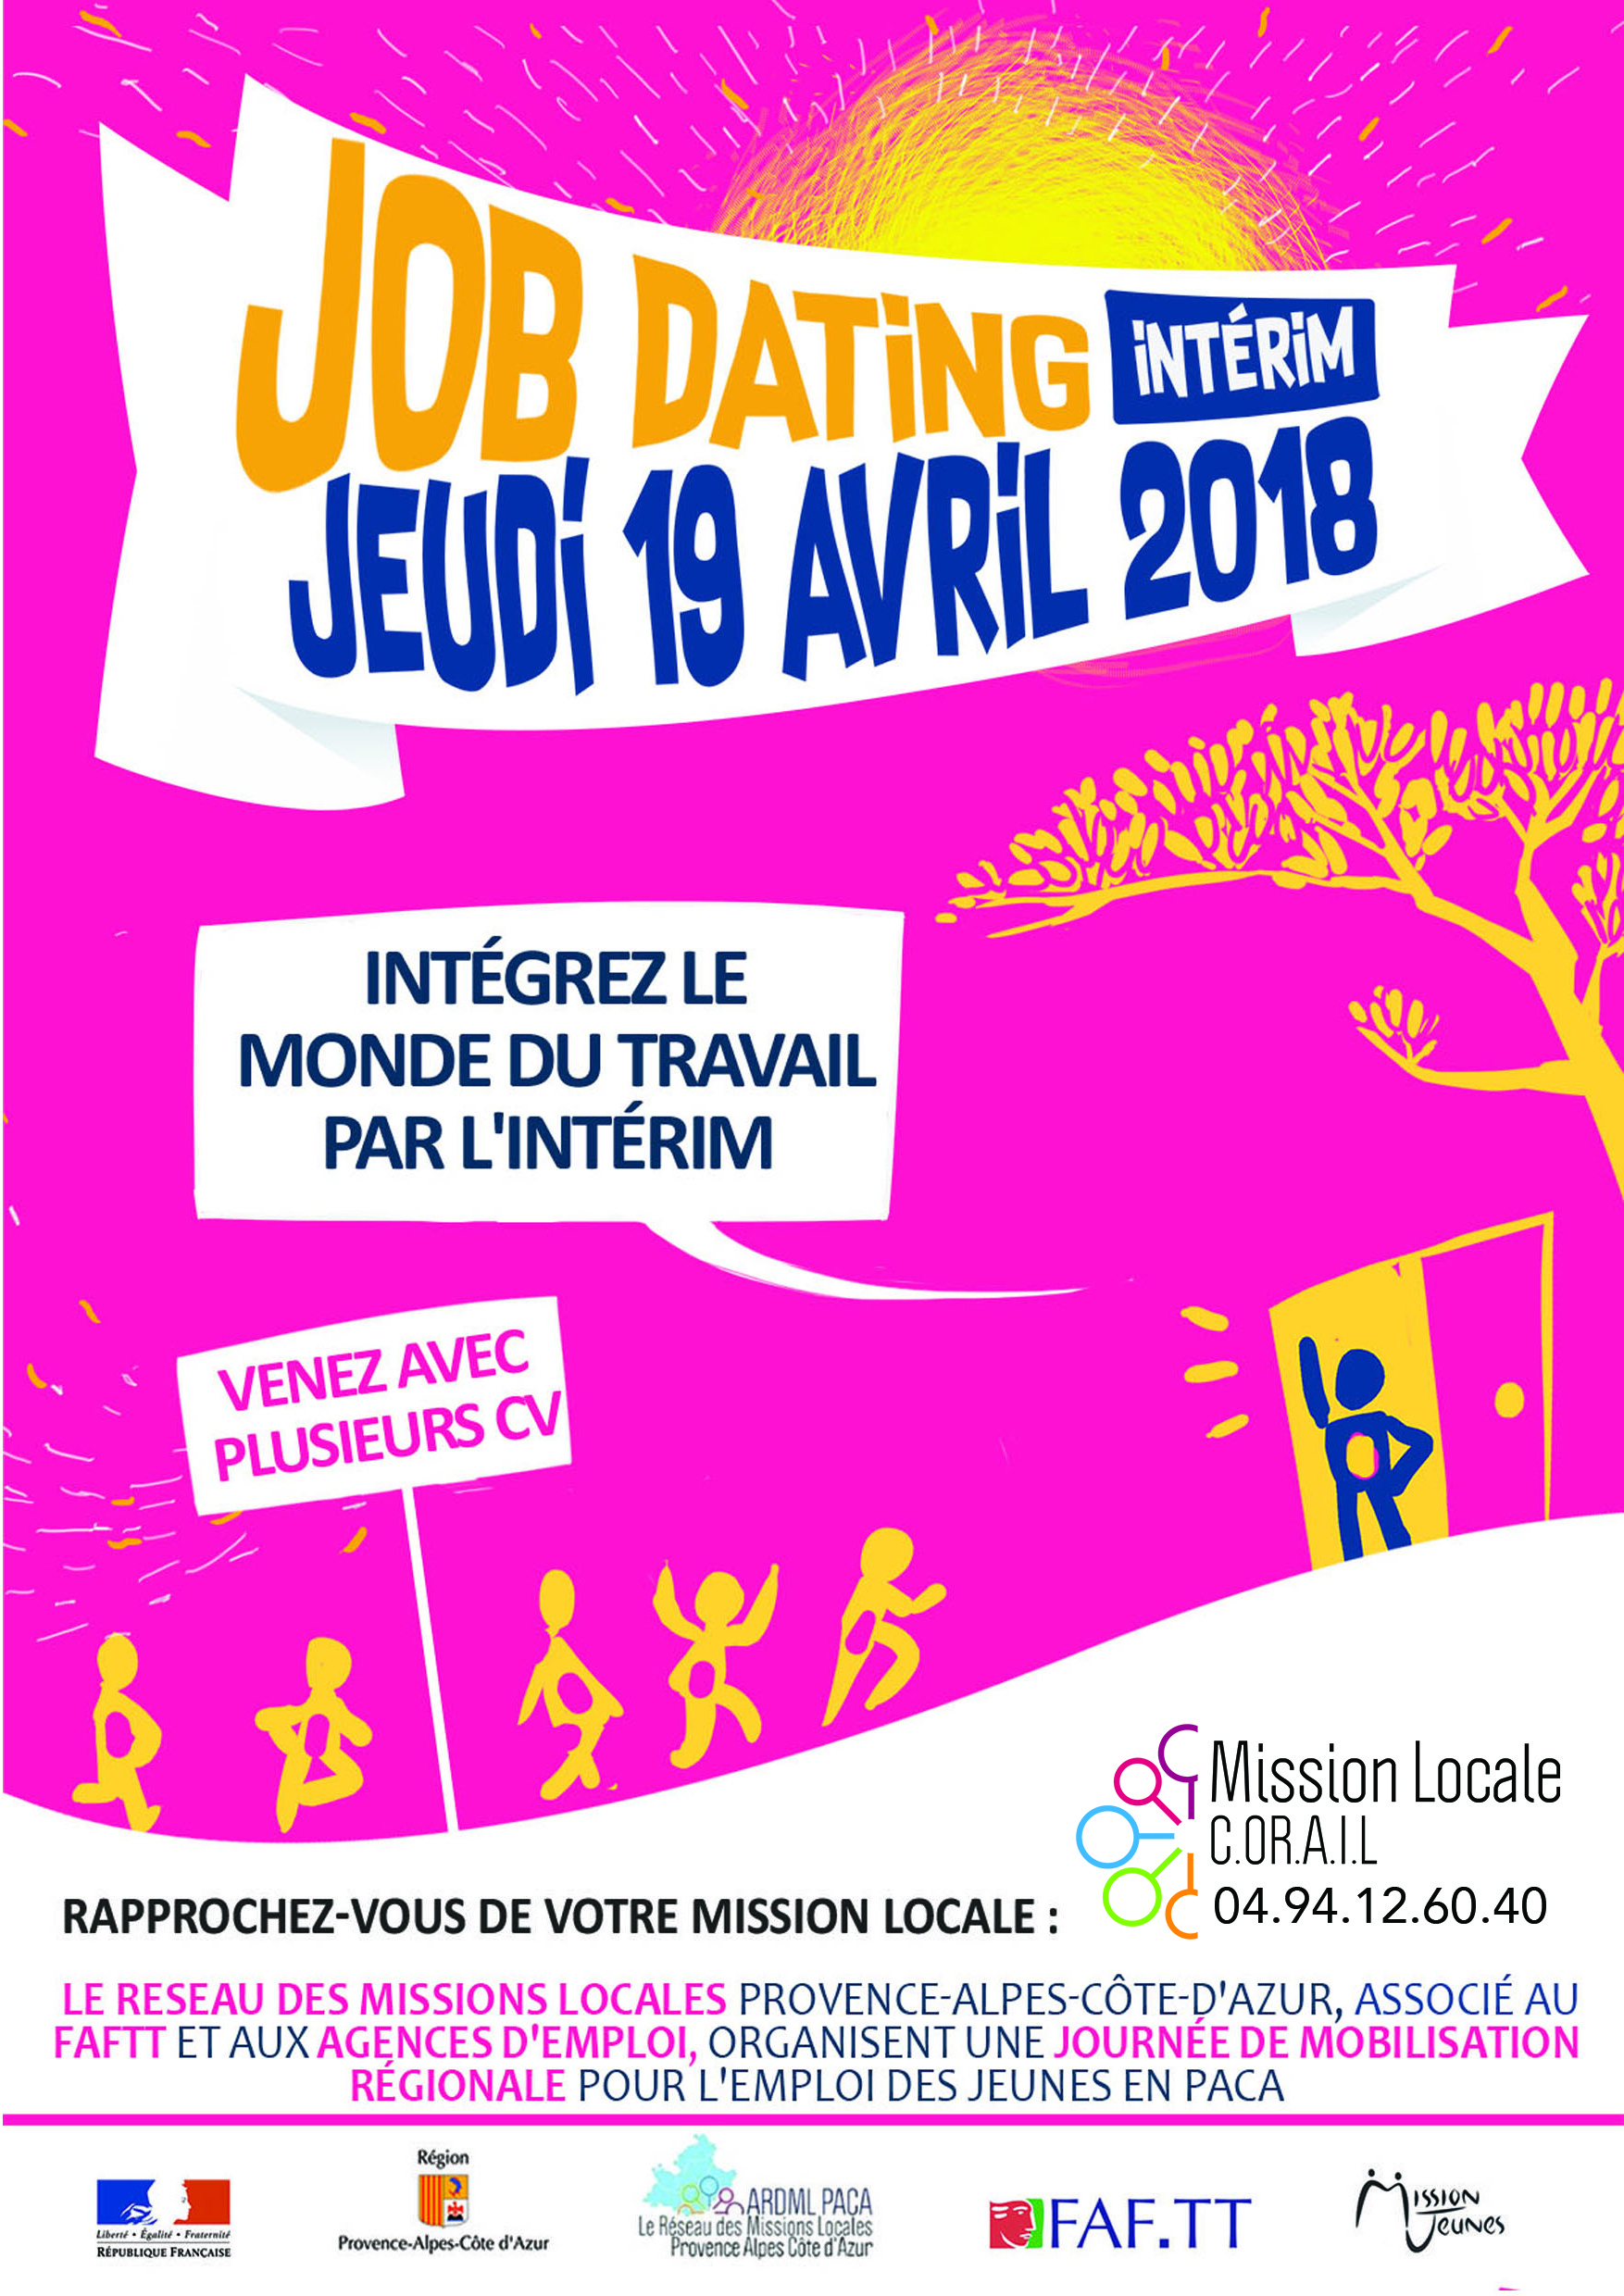 Flyer job dating interim 19 avril 2018